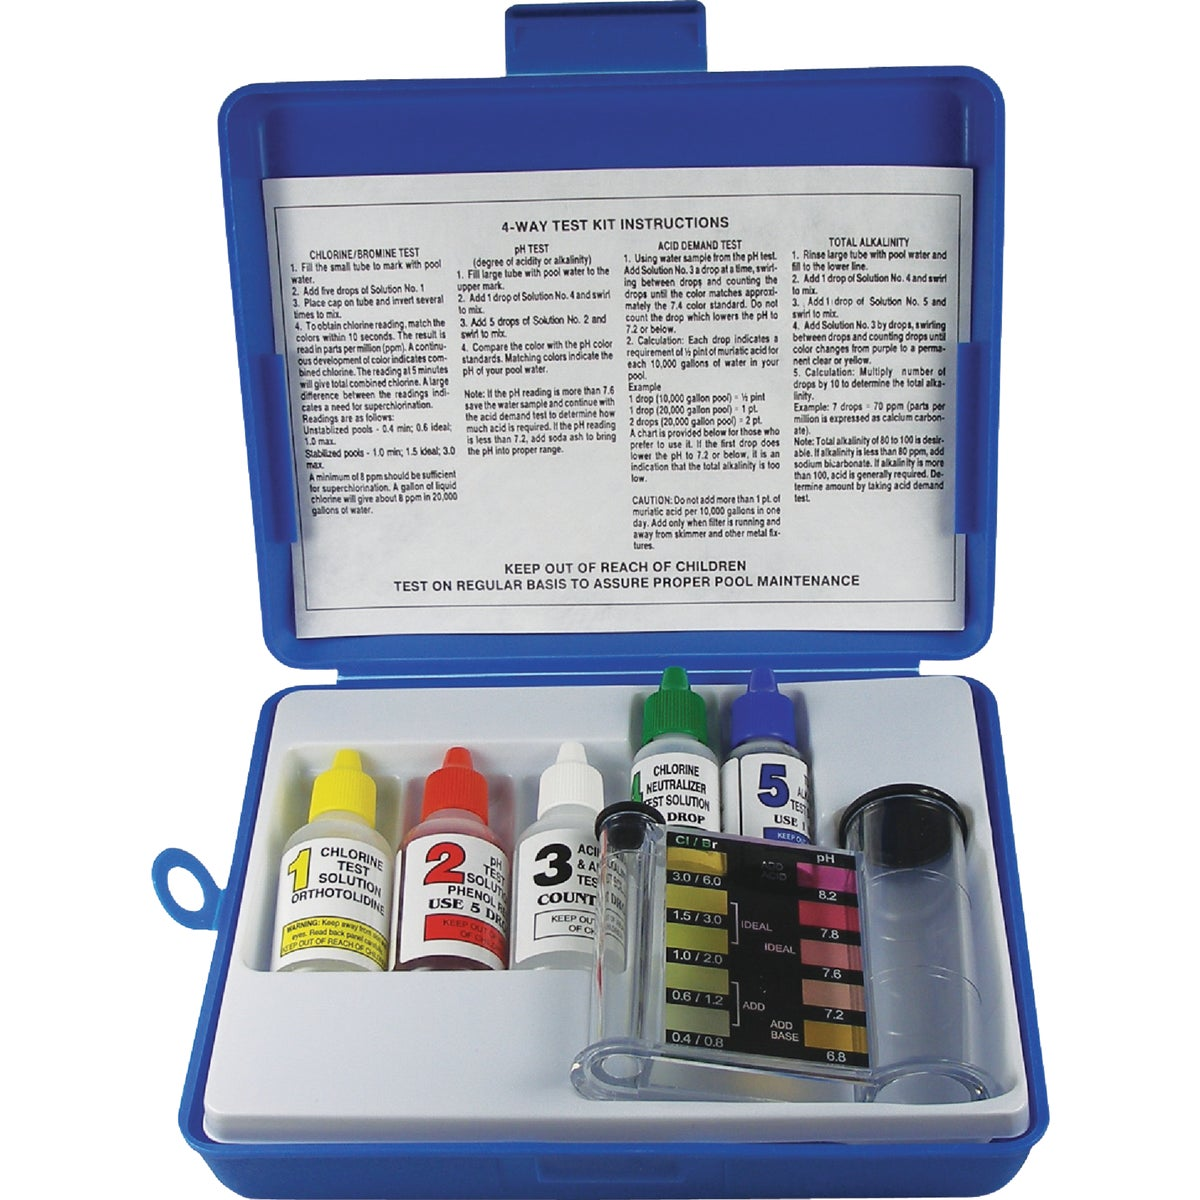 4-WAY TEST KIT - 00-486 by Jed Pool